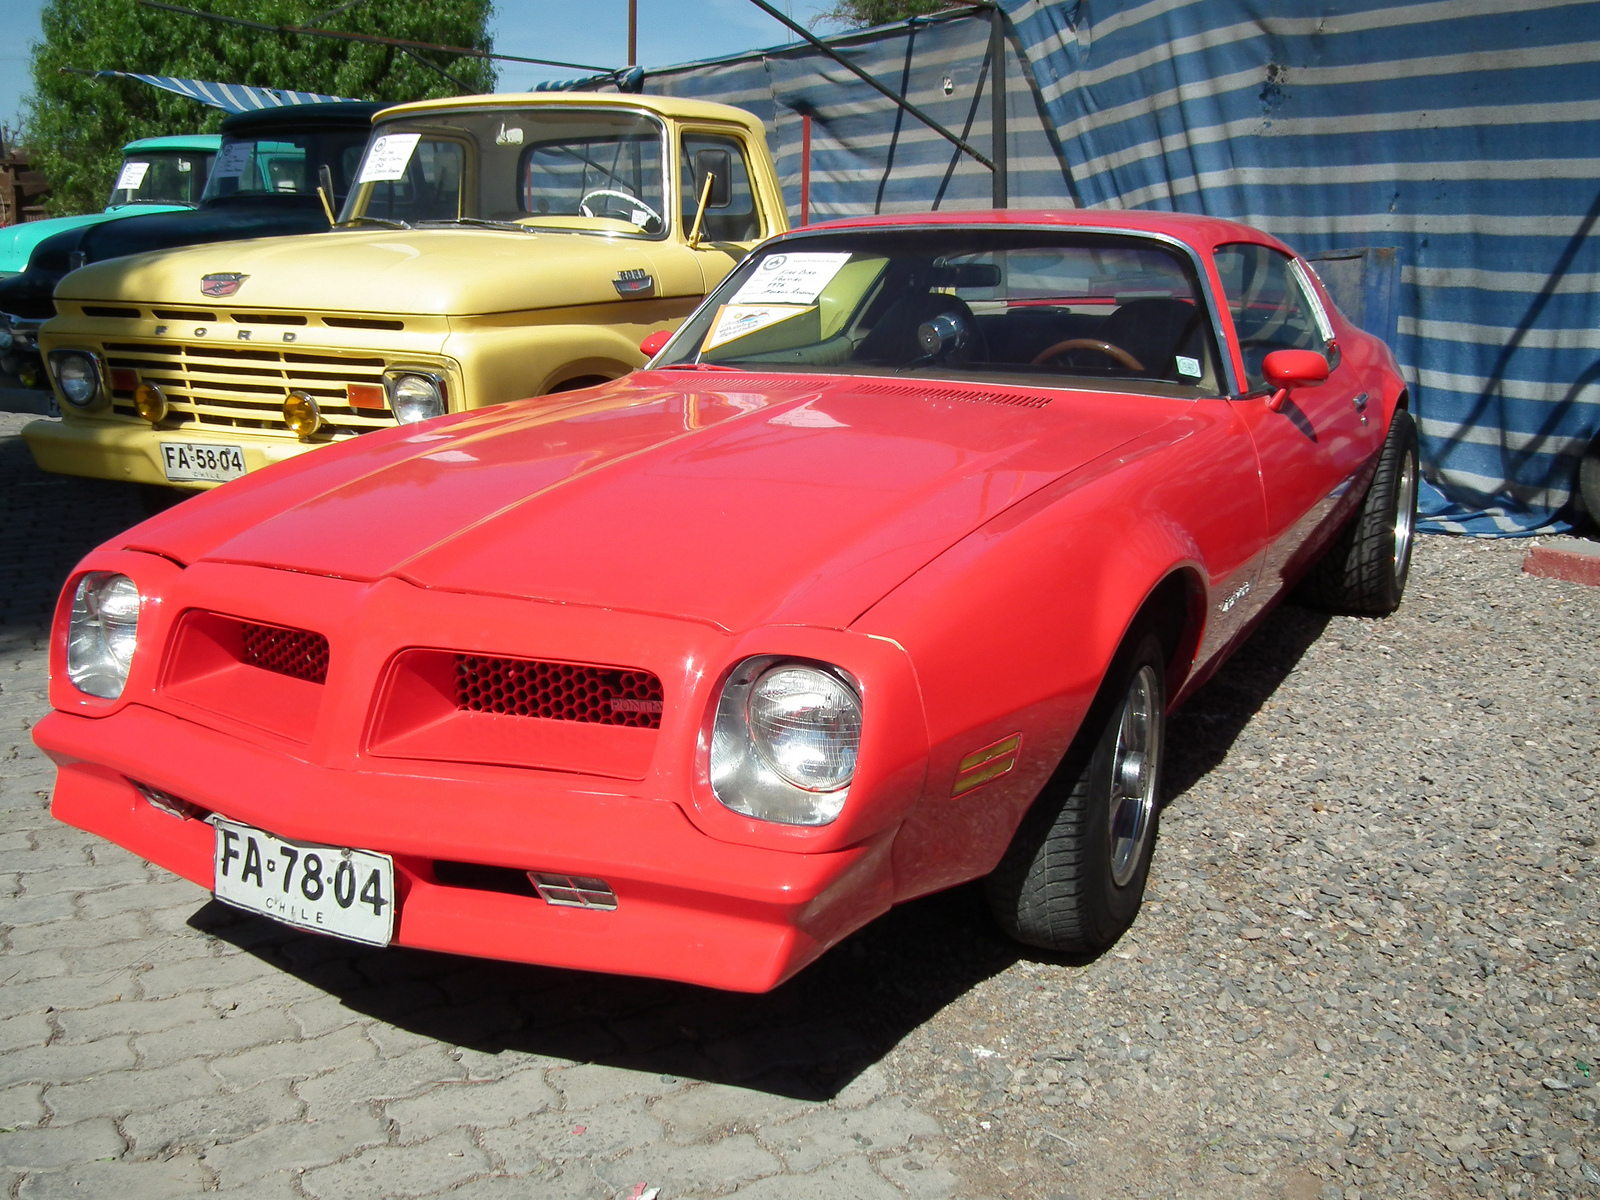 Pontiac firebird 1976 | Flickr - Photo Sharing!